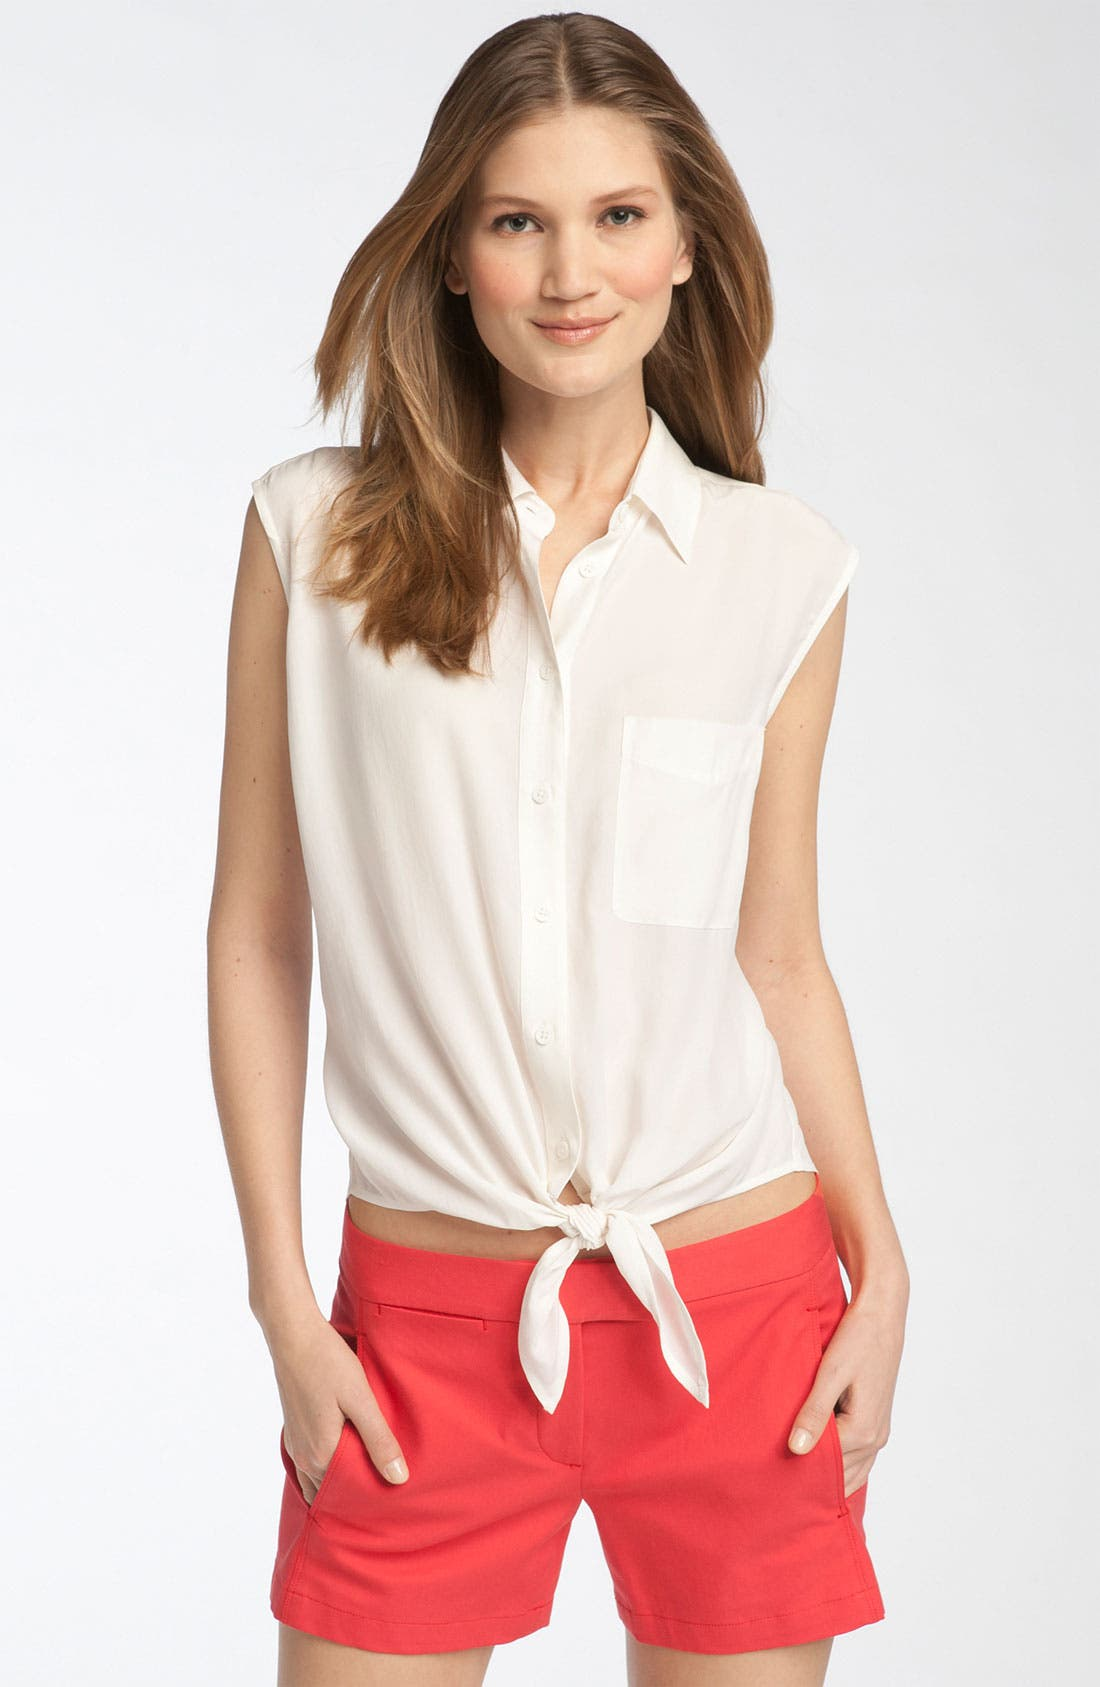 Main Image - Equipment 'Diem' Tie Front Sleeveless Silk Blouse